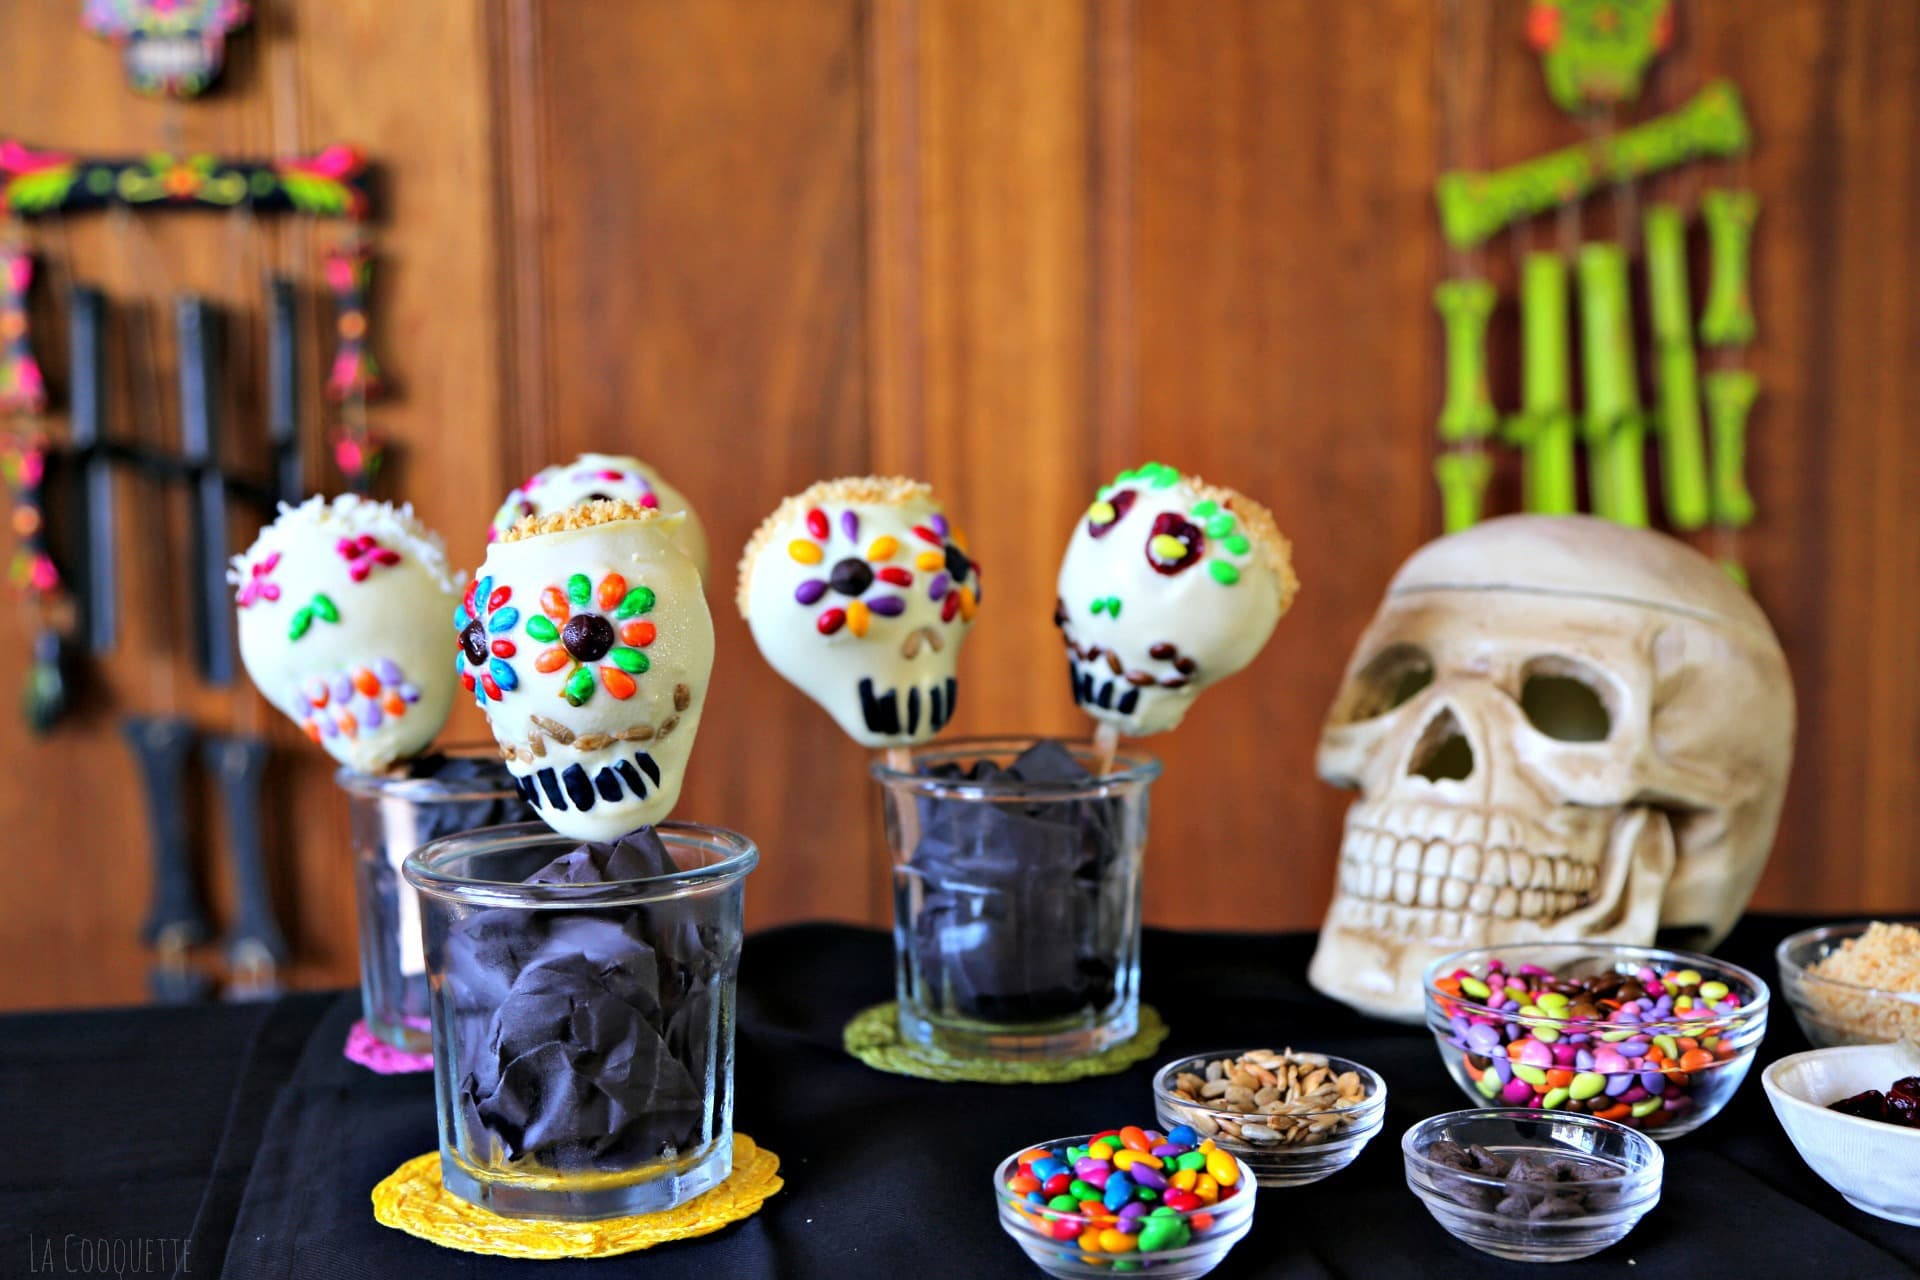 White Chocolate Pear Skulls - Halloween / Day of the Dead recipes - La Cooquette